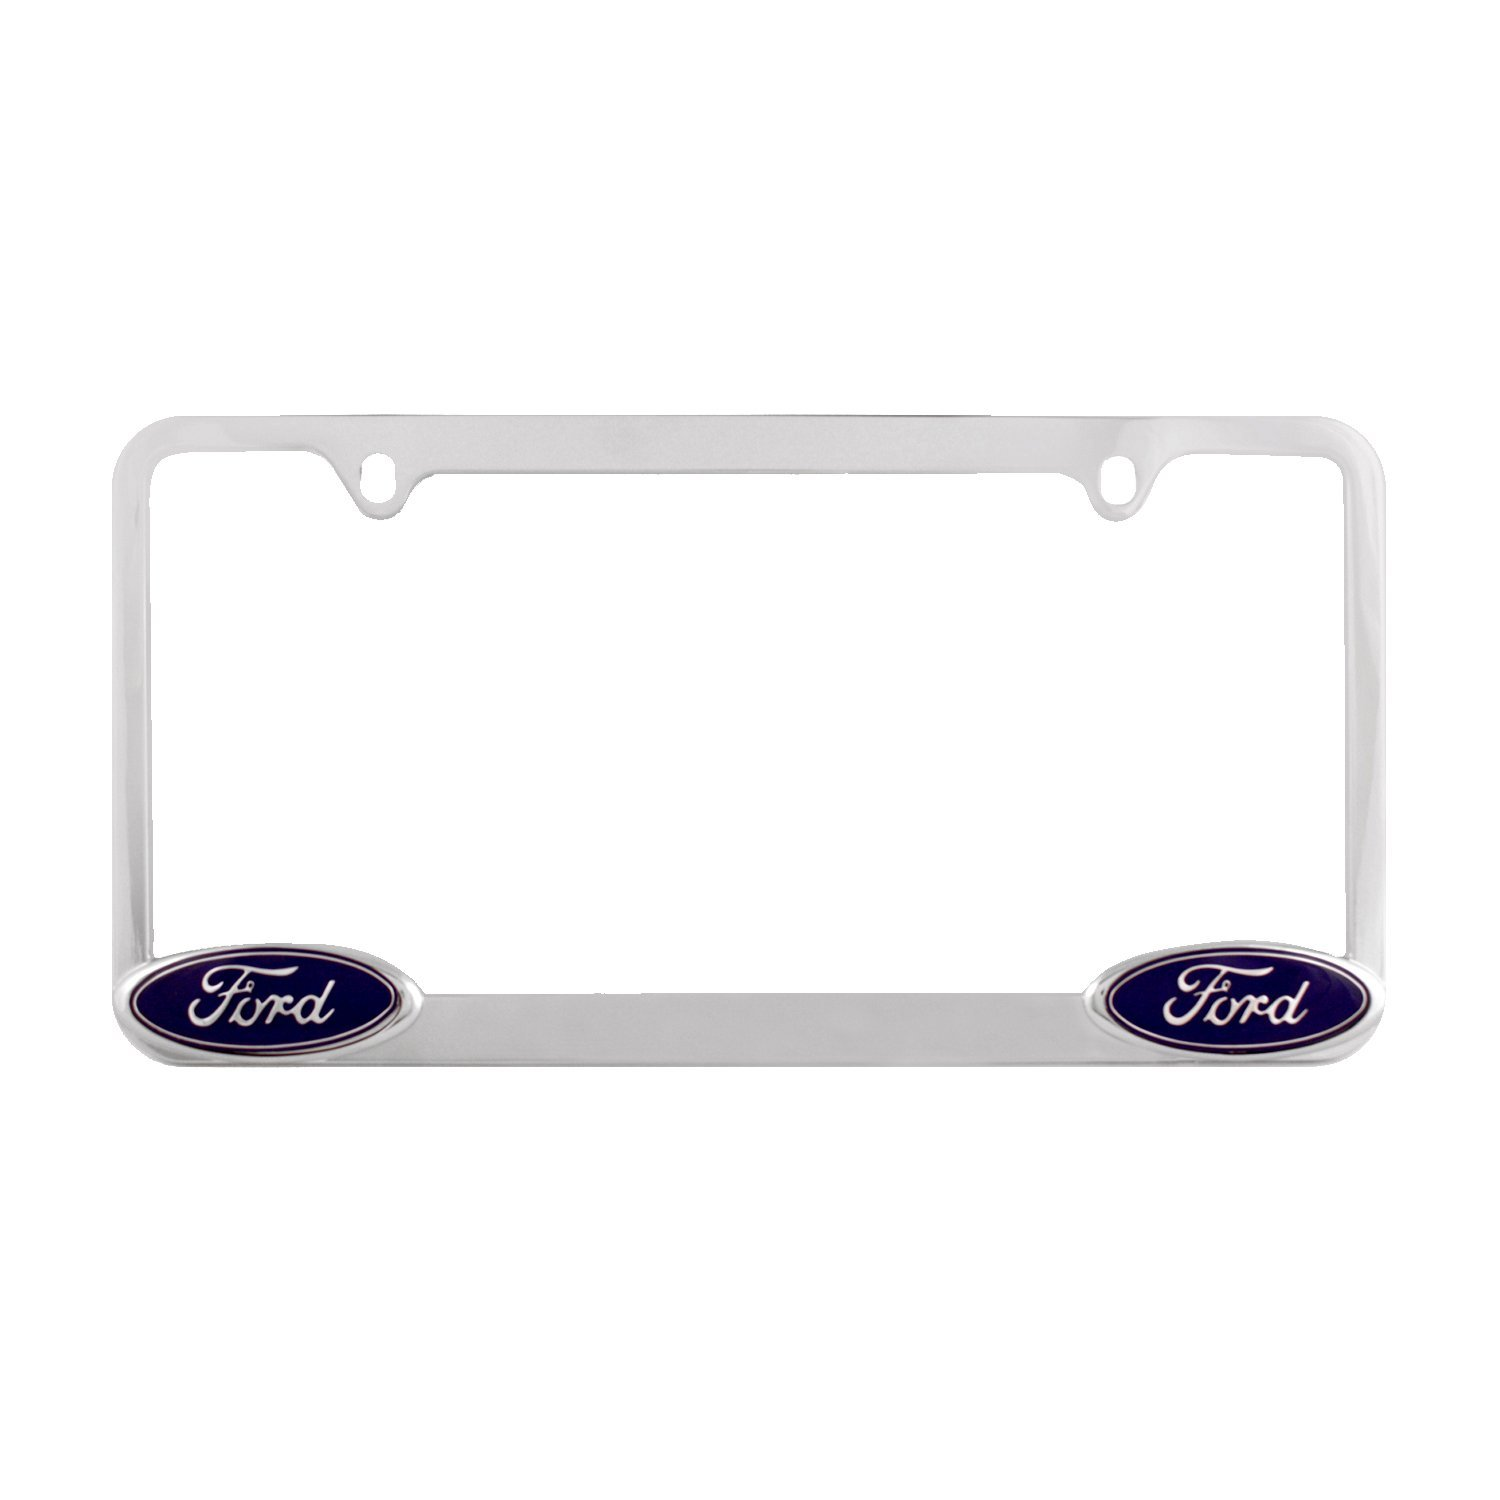 Chrome Ford License Plate Frame, Cool Silver and similar items